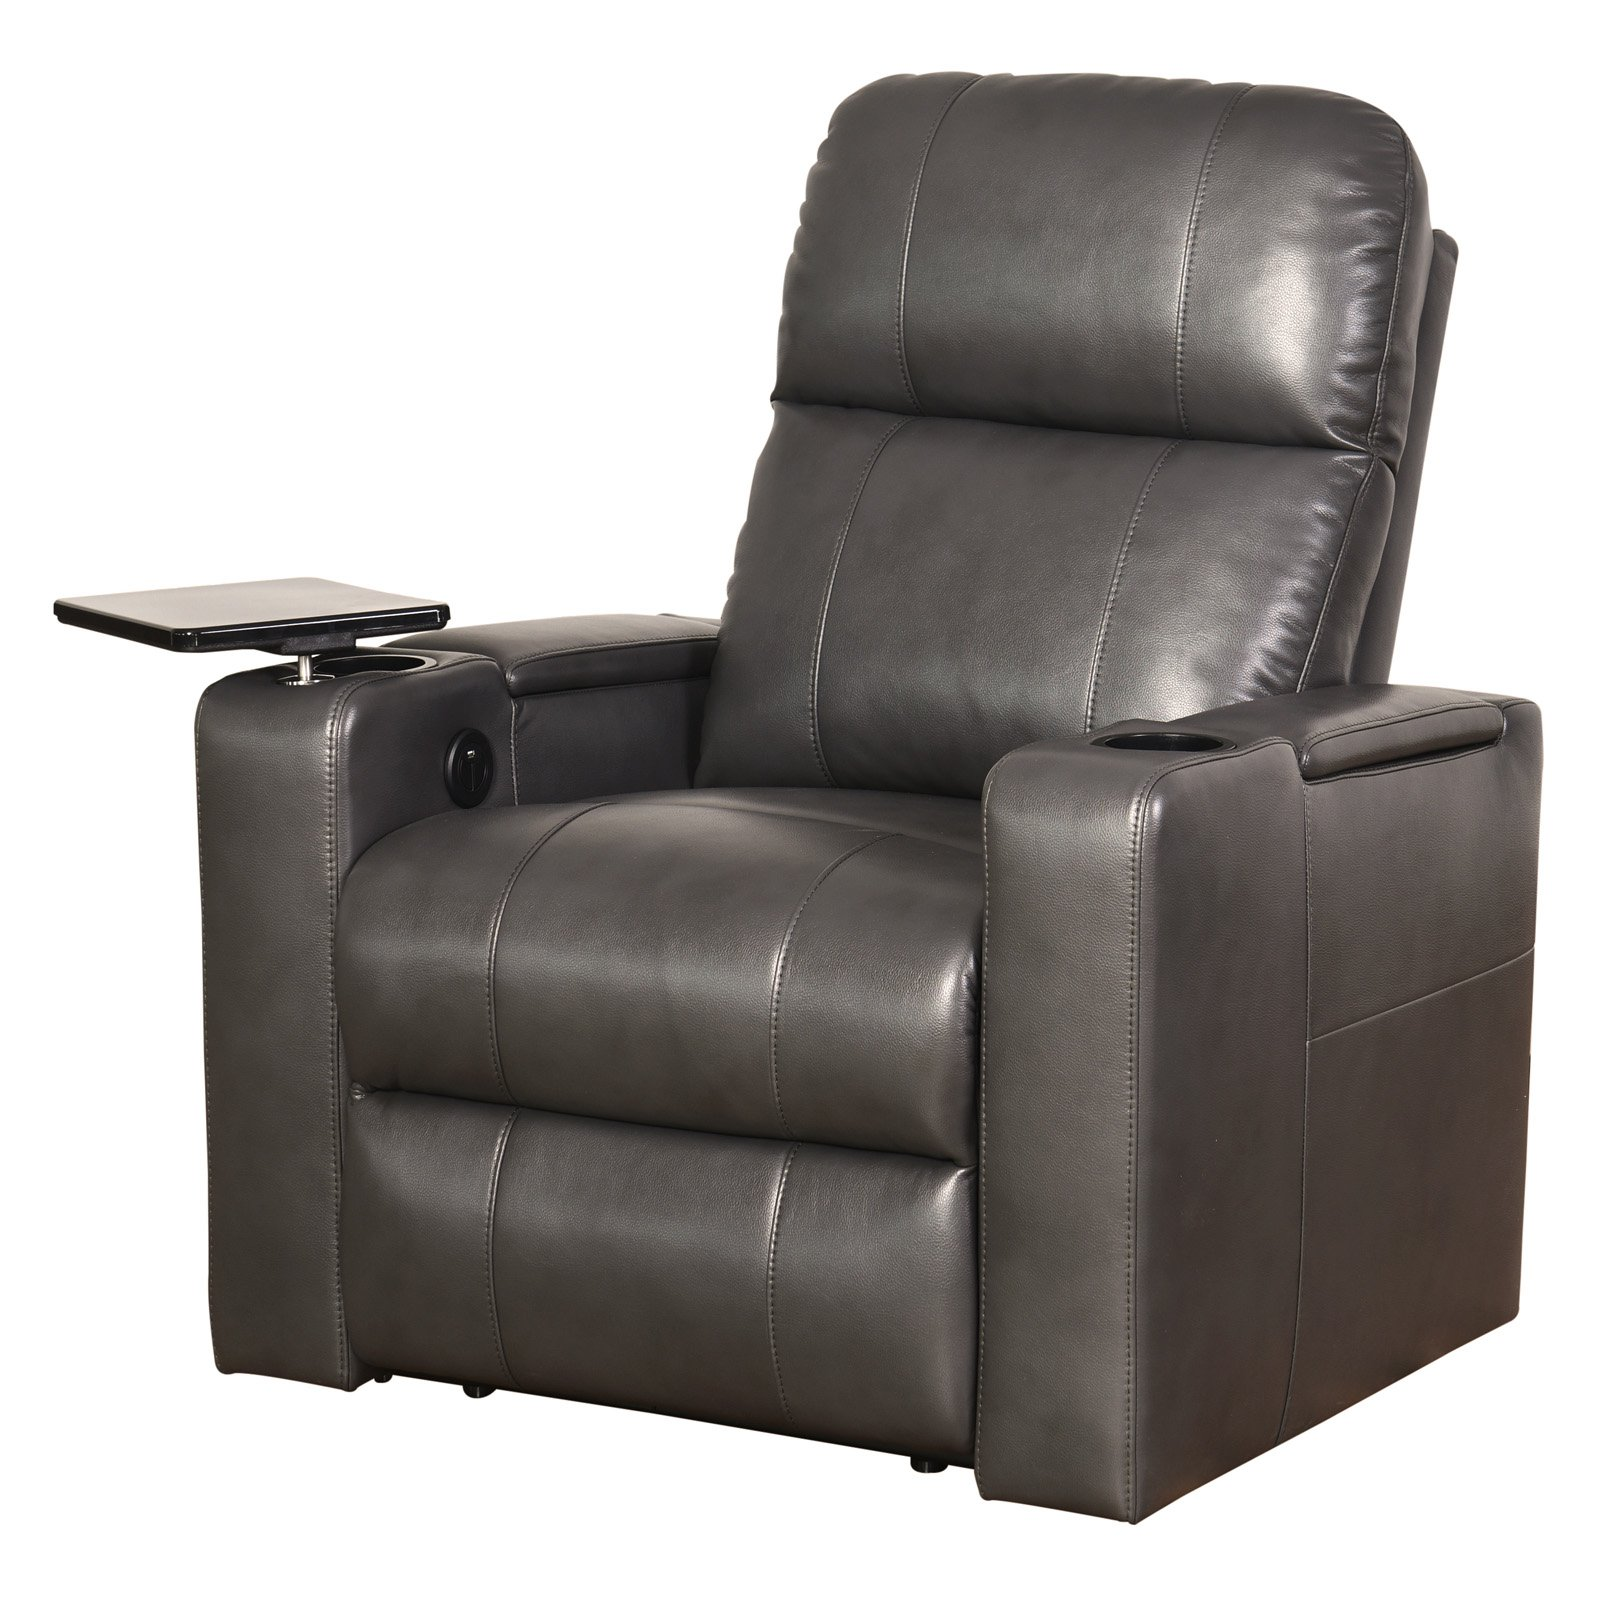 Abbyson Sage Power Leather Recliner